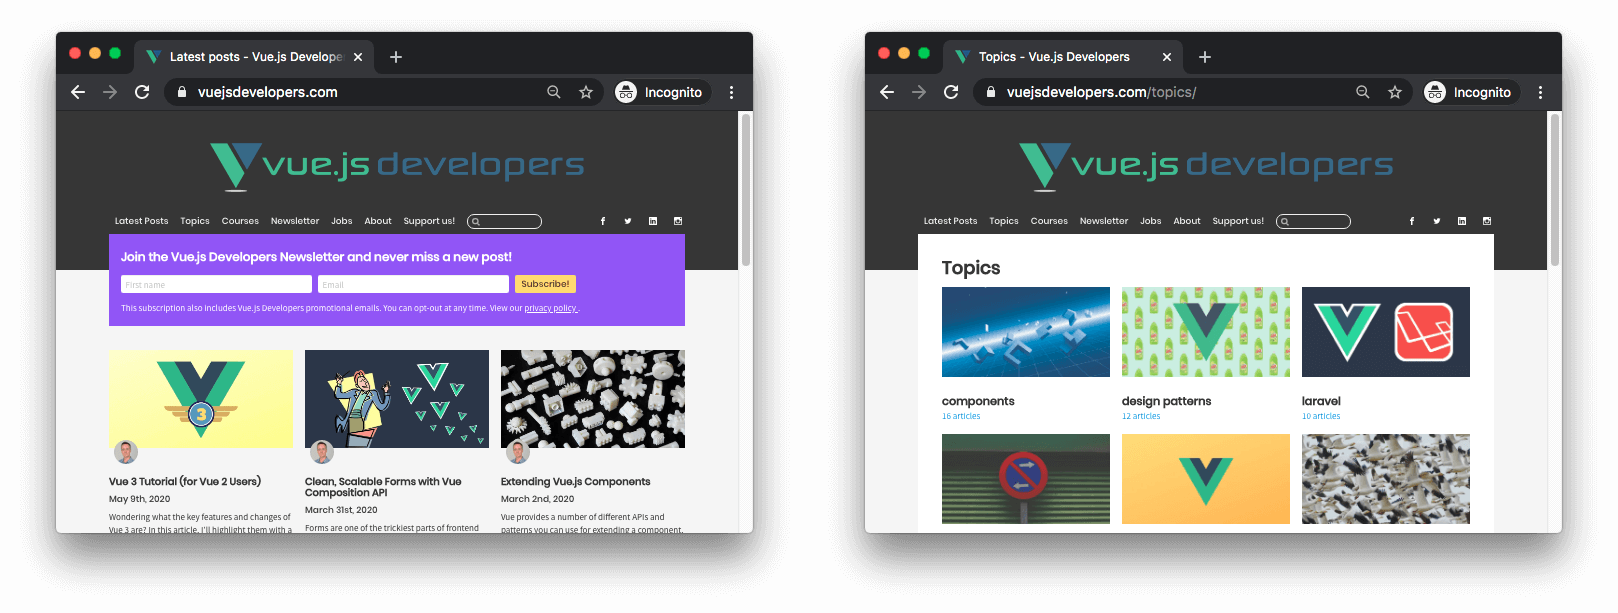 Vue.js Developers Blog